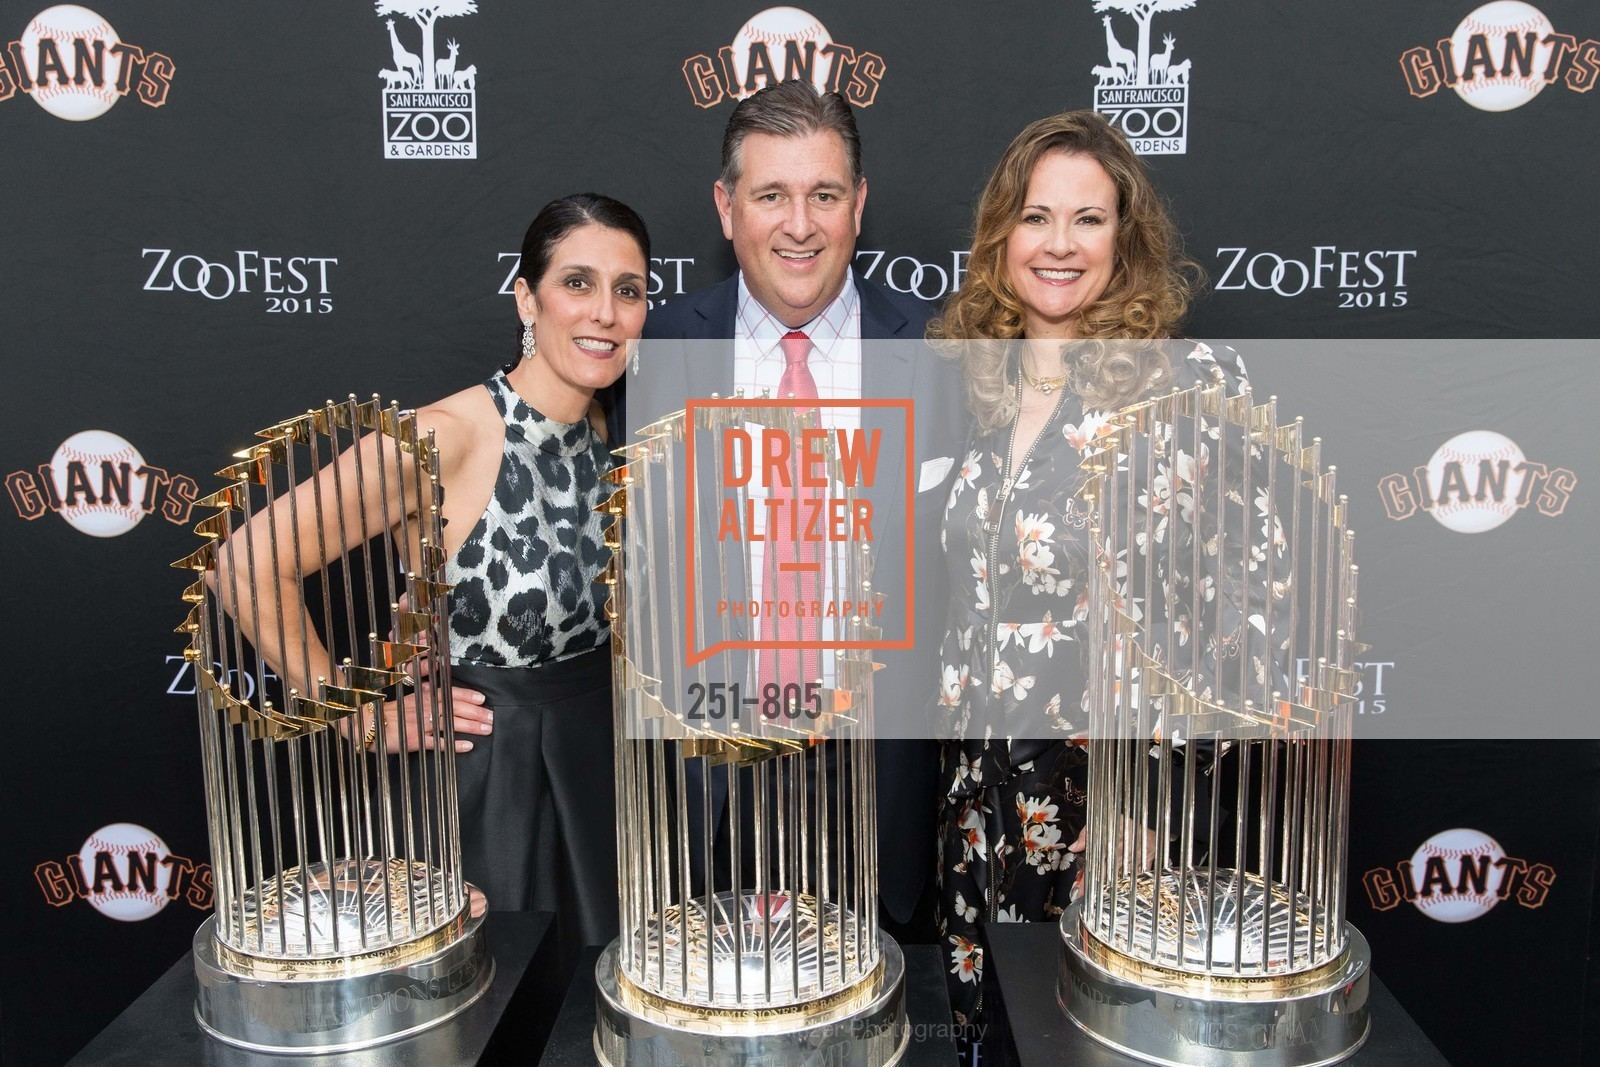 Elizabeth Revetria, Stephen Revetria, Tanya Peterson, ZOOFEST 2015, US, April 25th, 2015,Drew Altizer, Drew Altizer Photography, full-service agency, private events, San Francisco photographer, photographer california